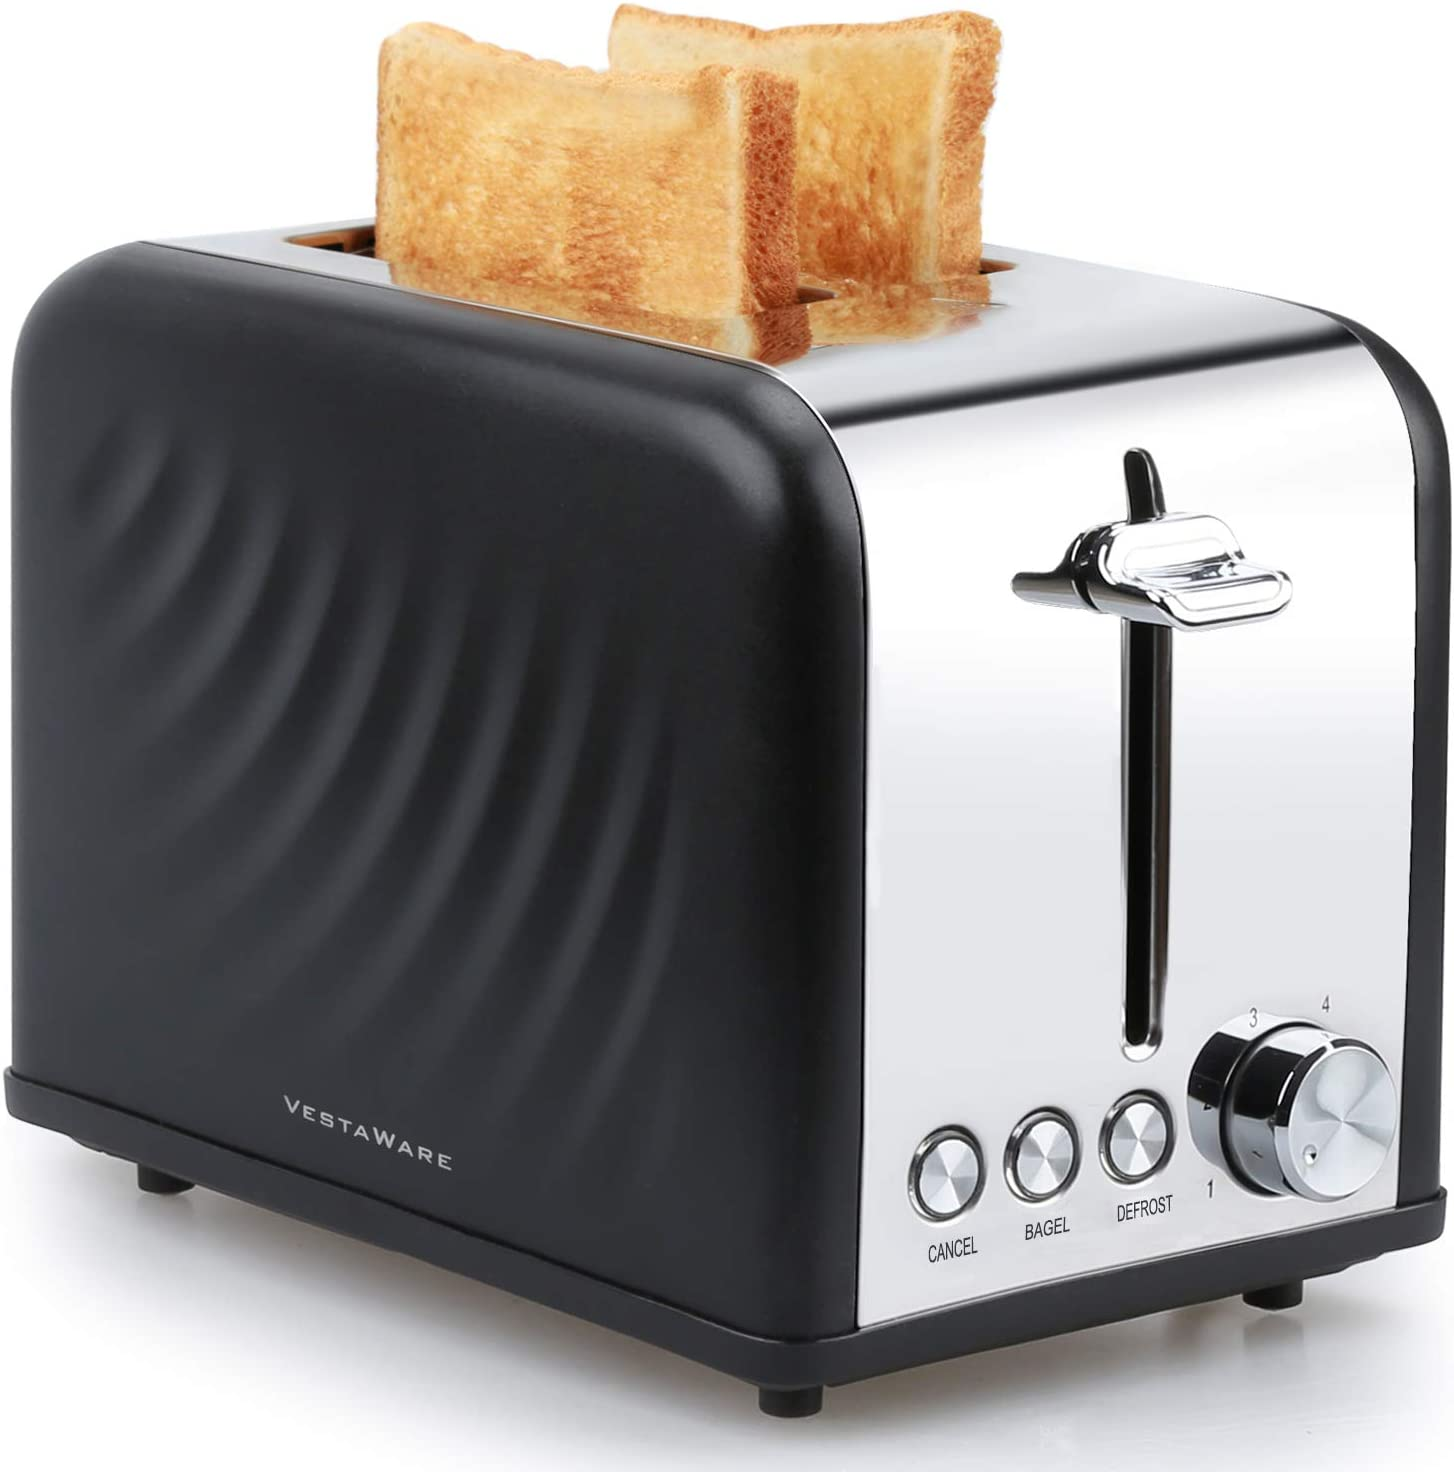 Toaster, Vestaware Extra Wide Slot Toaster 2 Slice – Bagel Defrost Cancel Function, 6 Bread Shade Kitchen Toaster with Removable Crumb Tray for Bread Waffles, Stainless Steel